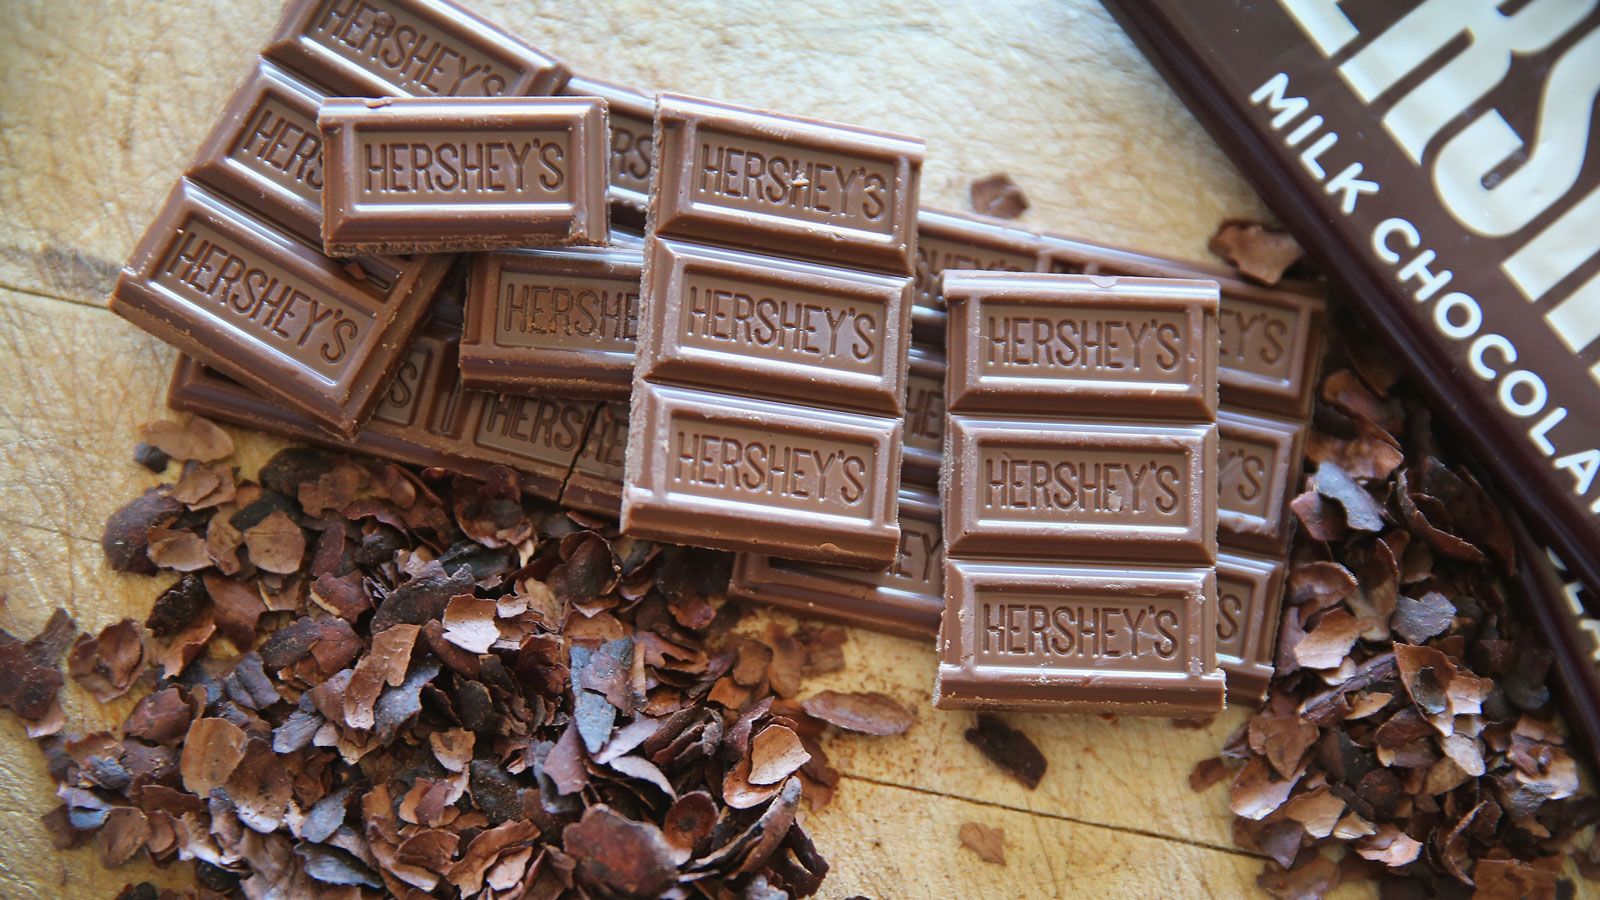 hersheys-chocolate-foods-nonamericans-dont-like-FT-BLOG0417.jpg